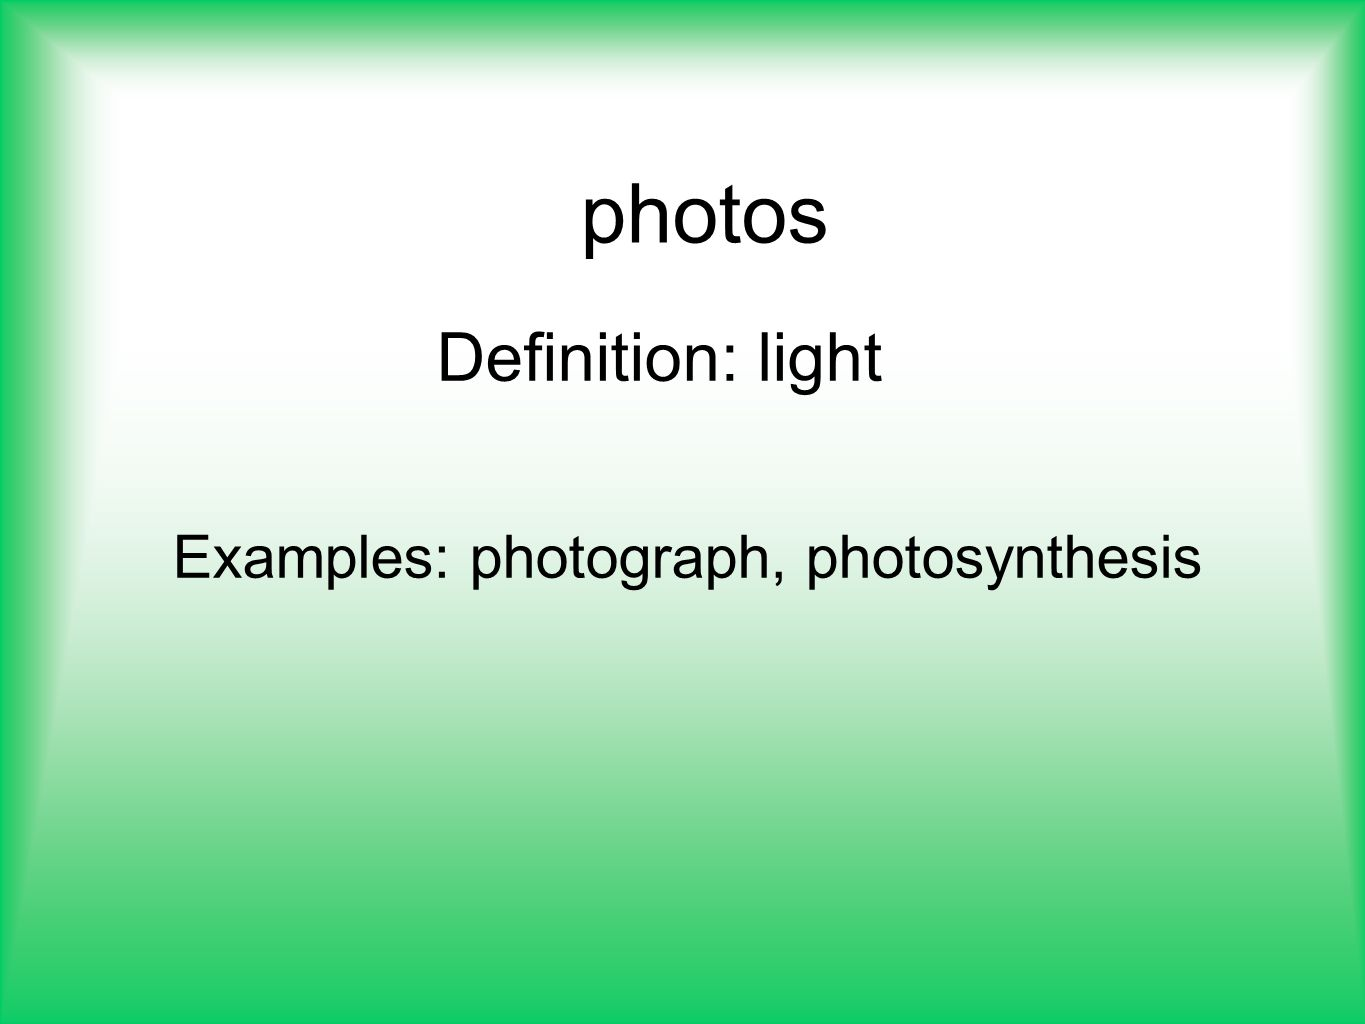 8 photos Definition: light Examples: photograph, photosynthesis